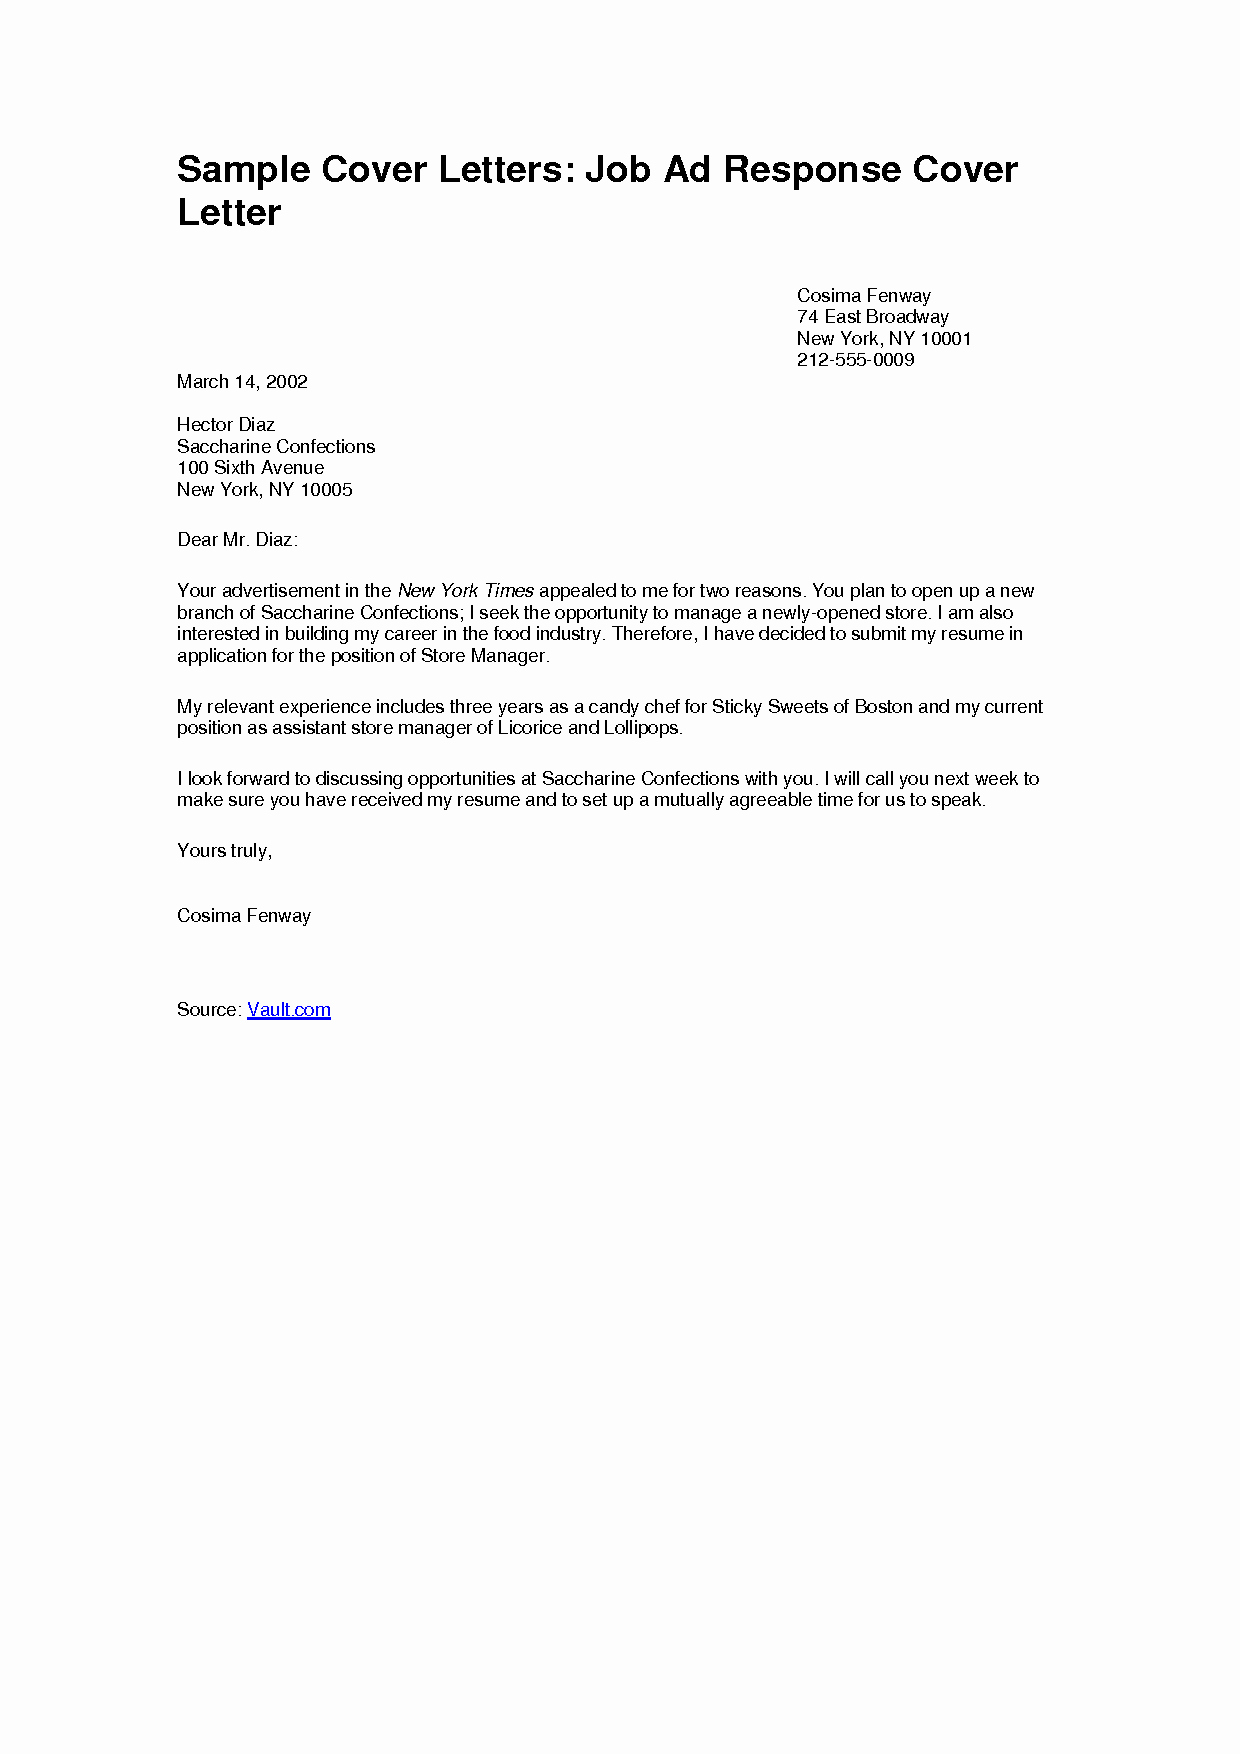 Job Cover Letter Sample Awesome Simple Job Application Cover Letter Examples